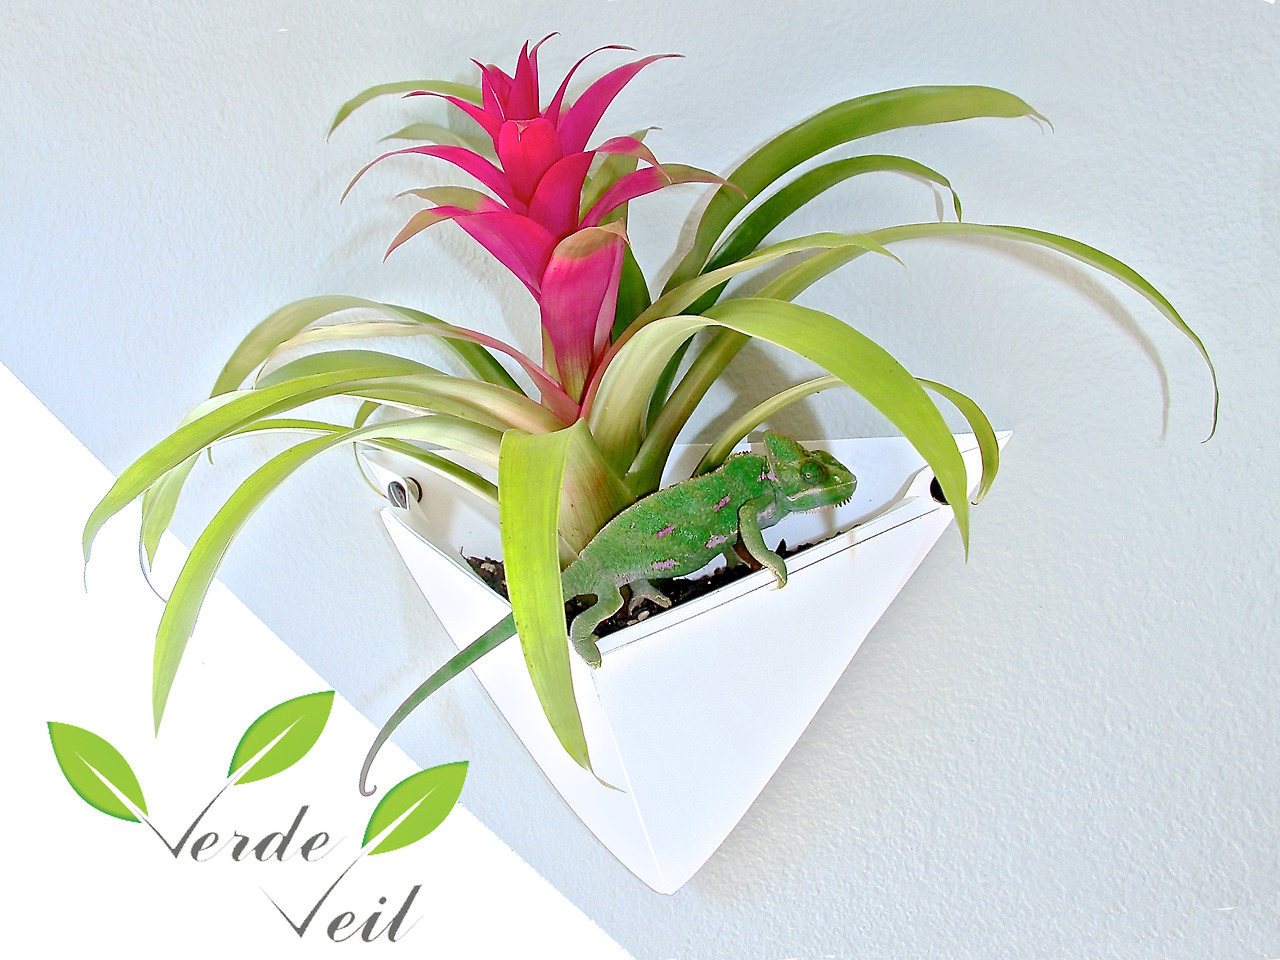 Verde Veil Origami Wall Planters on sale soon through Kickstarter